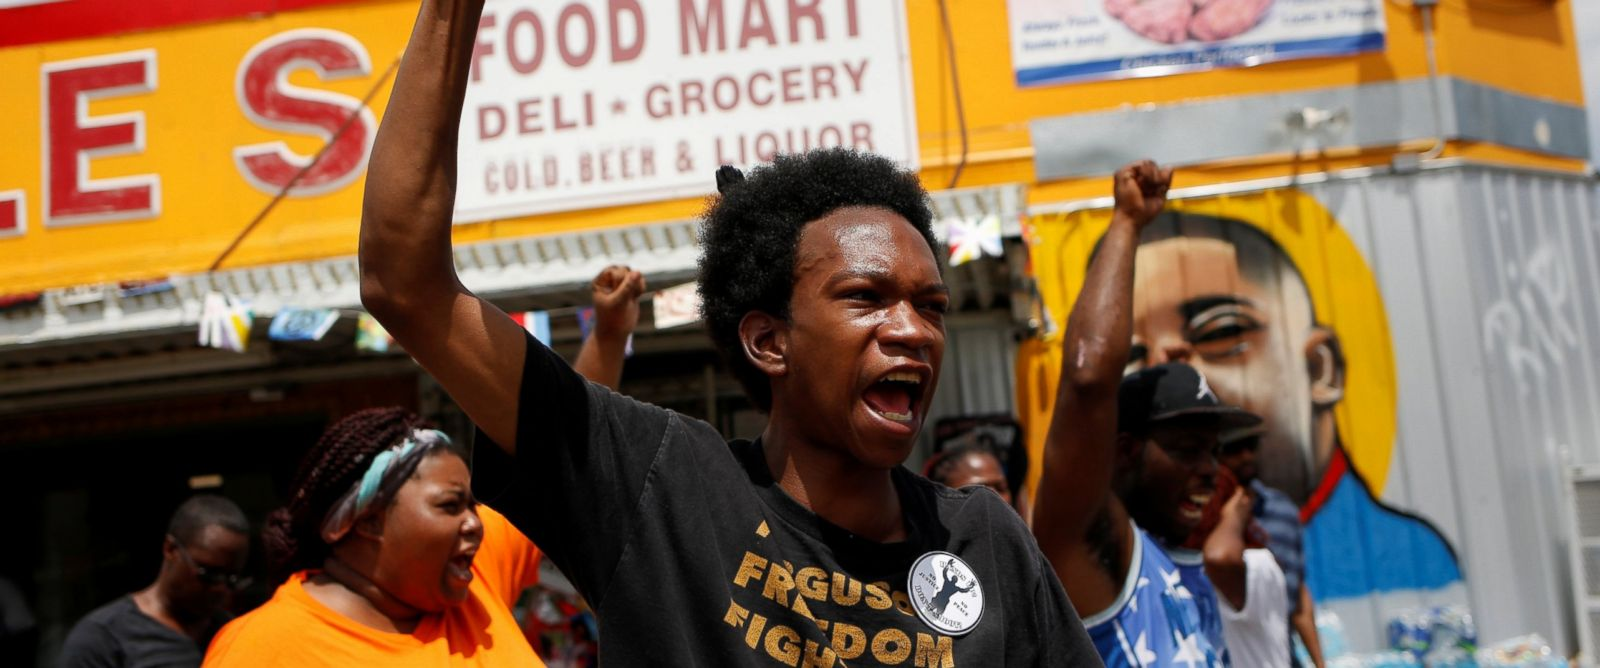 PHOTO: Demonstrators gather outside the Triple S convenience store on July 10, 2016, in Baton Rouge, Louisiana, where Alton Sterling was shot dead by police.